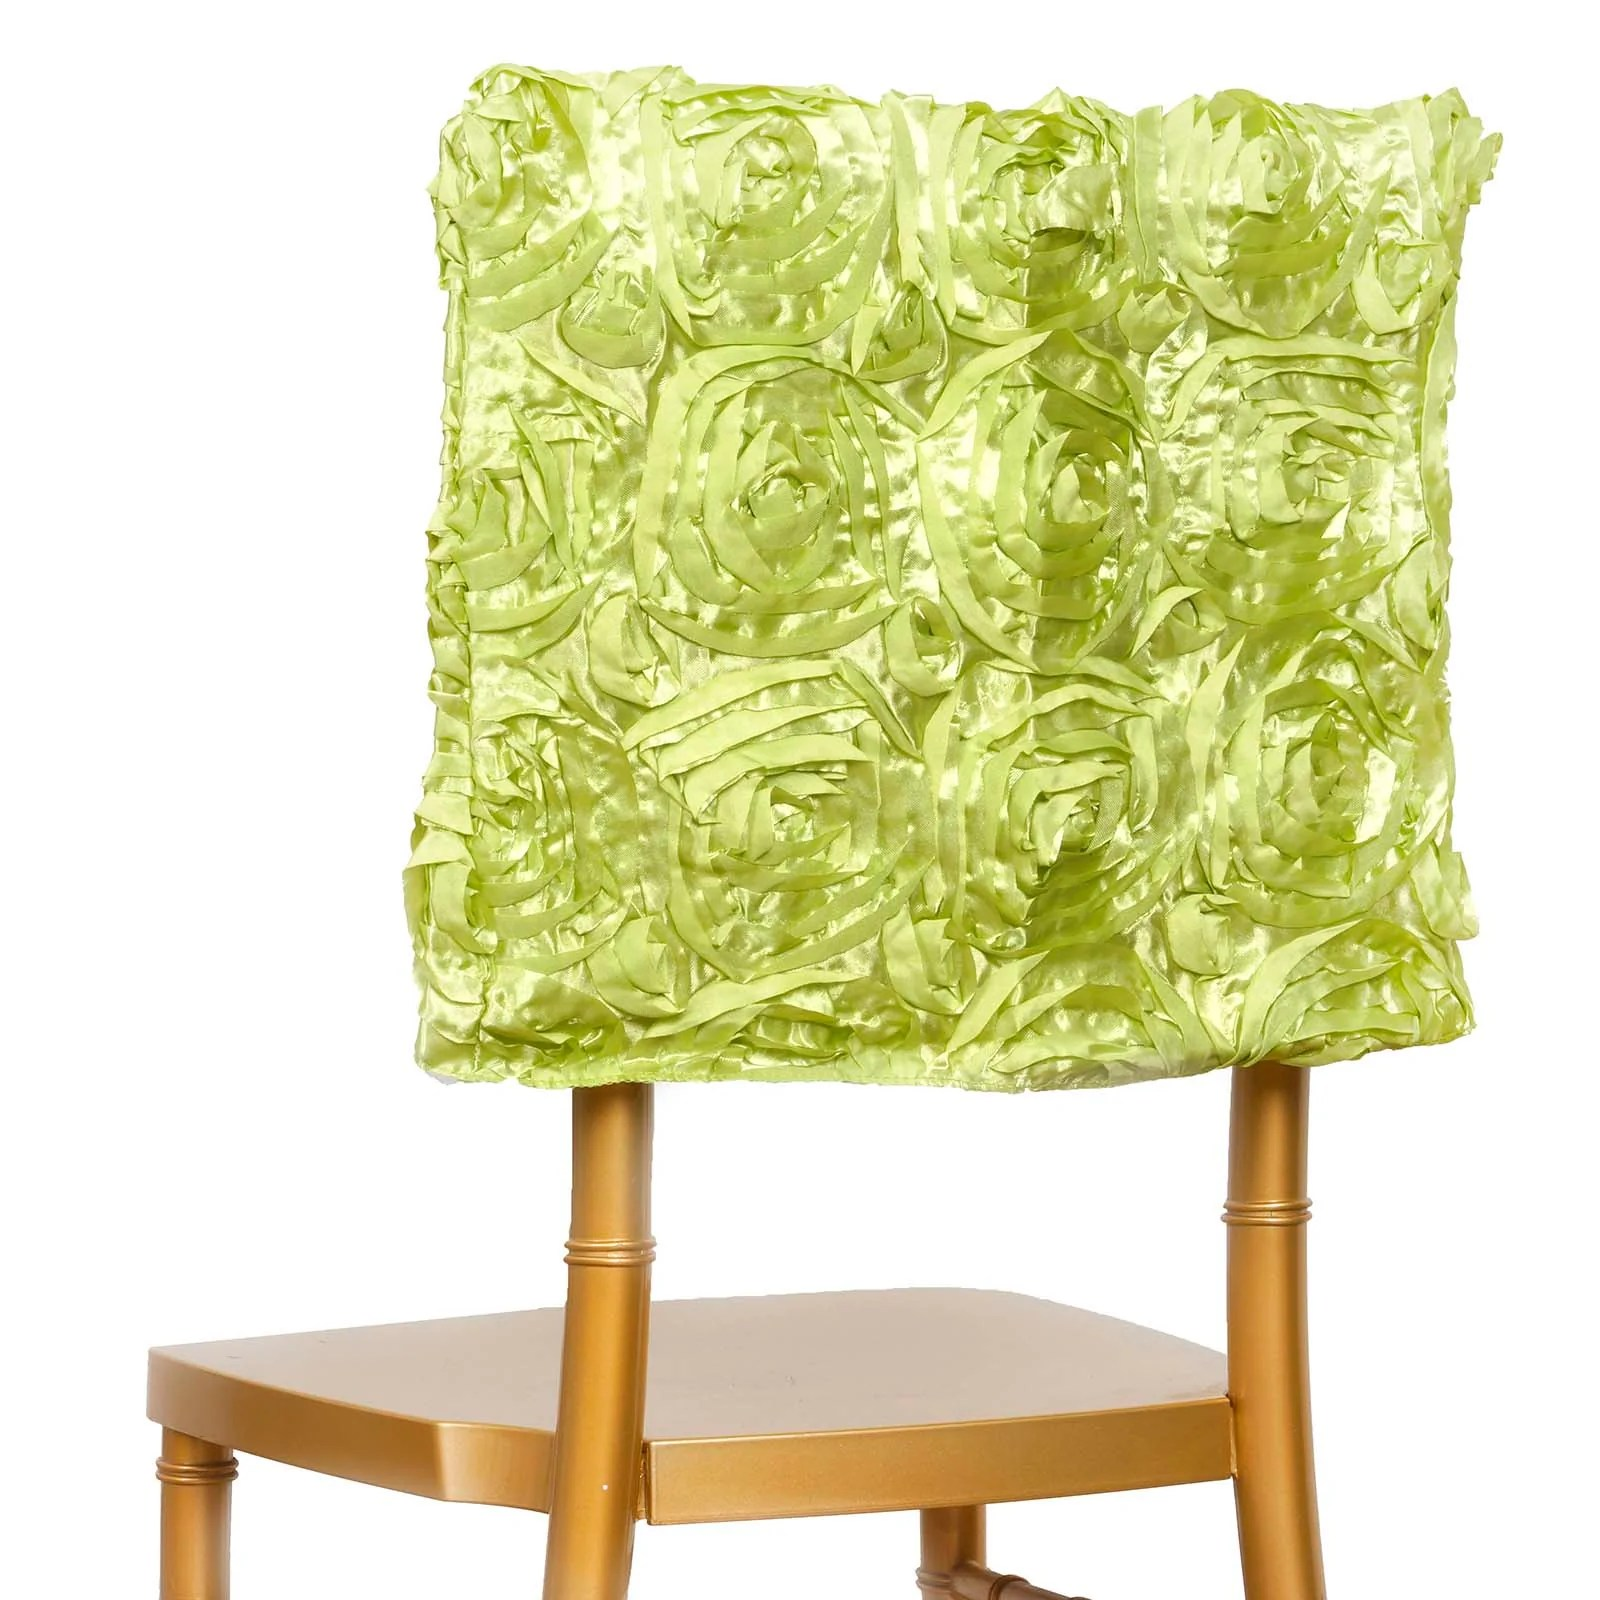 Green Chair Covers 16 Quot Apple Green Rosette Chiavari Chair Caps Cover For